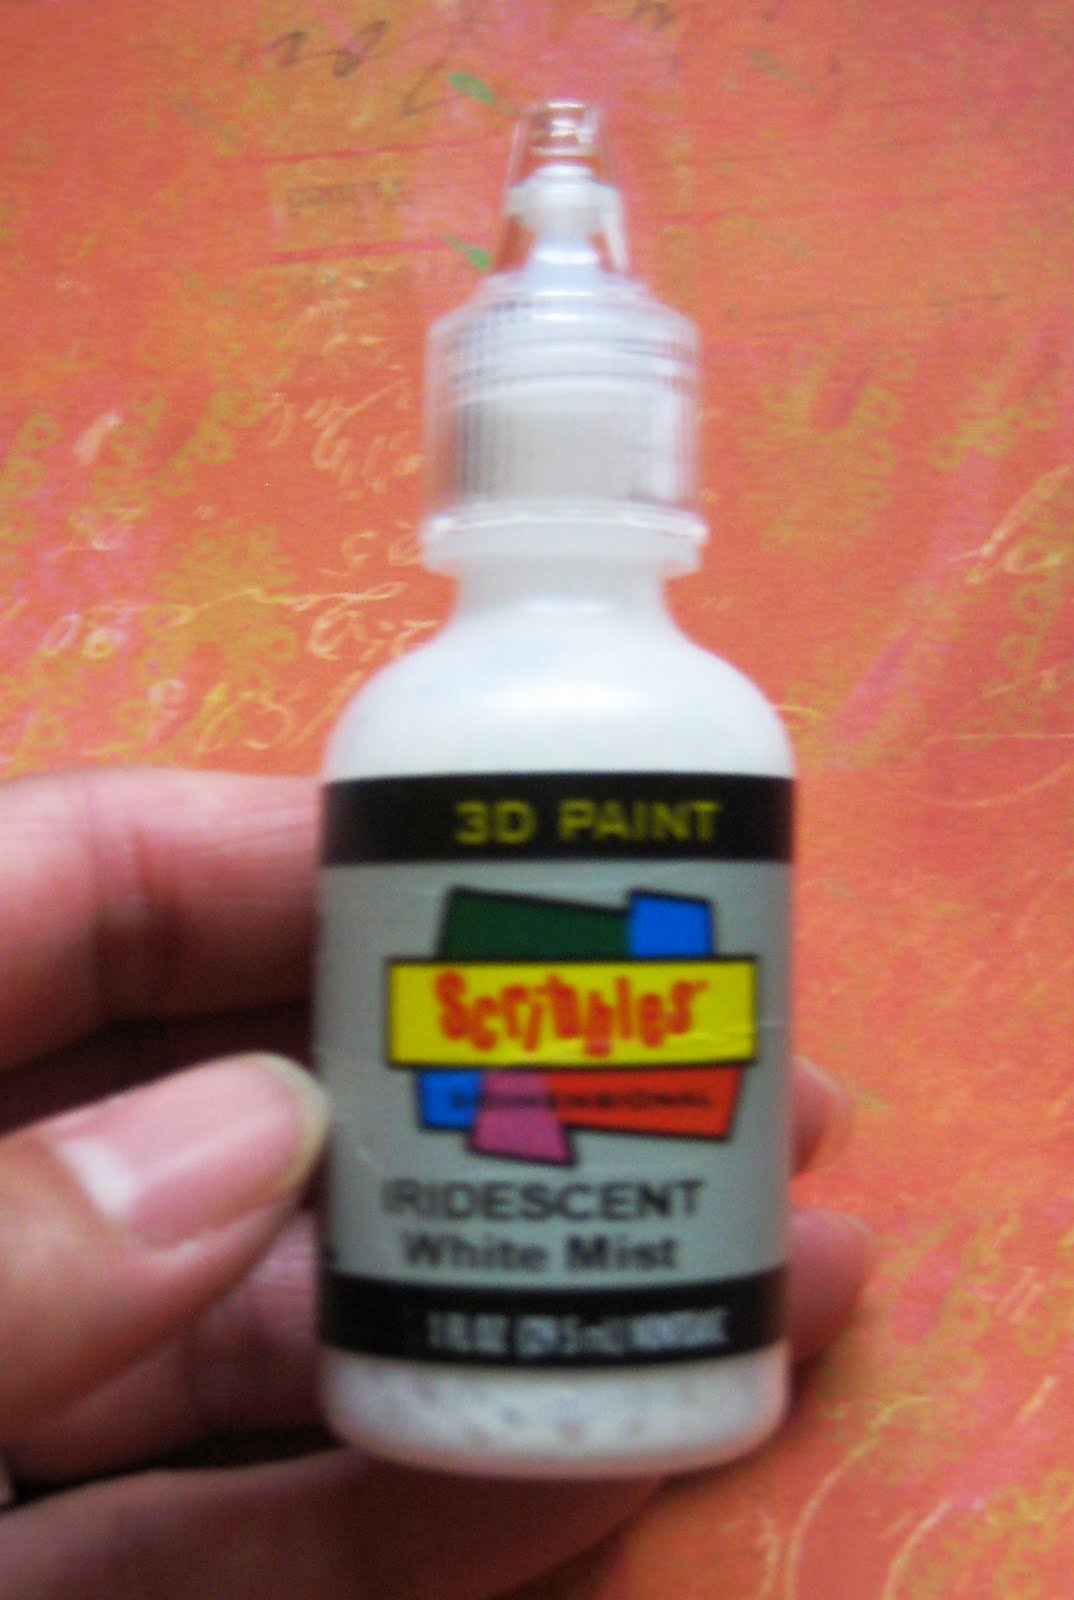 How to use 3 dimentional paint